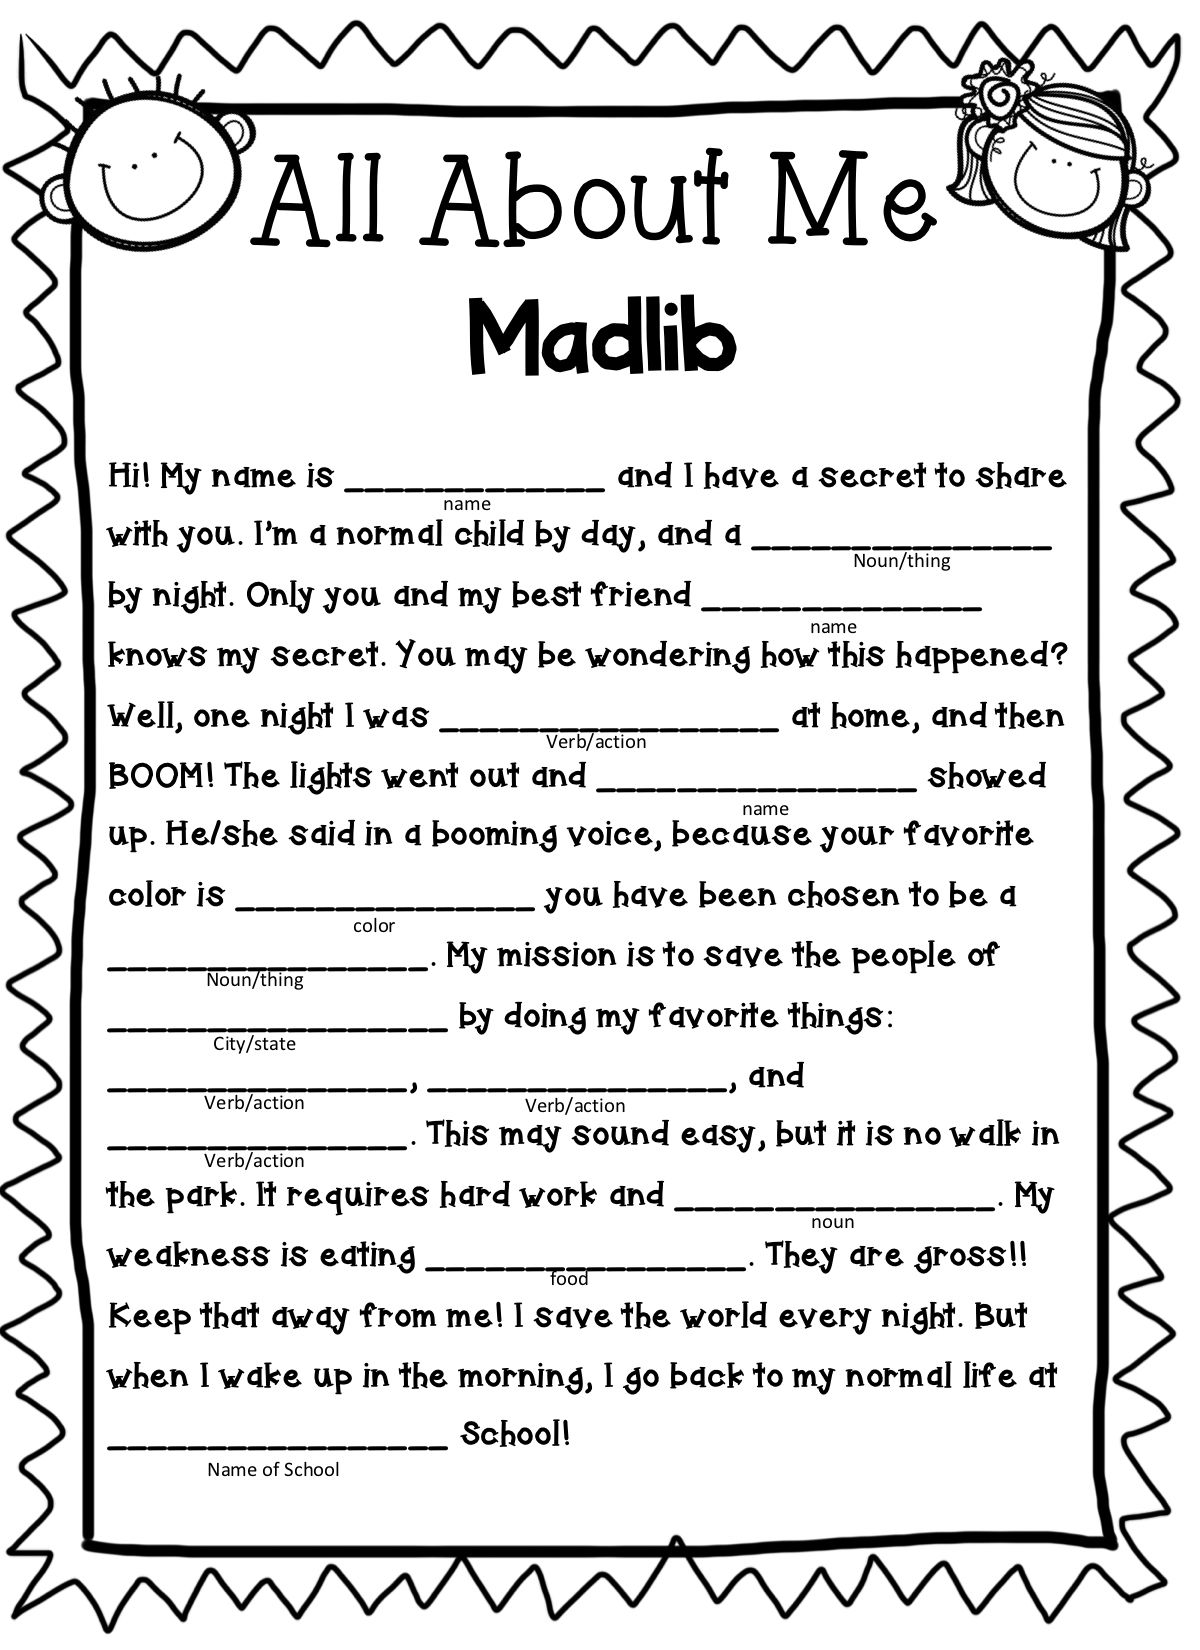 All About Me Madlib With Images